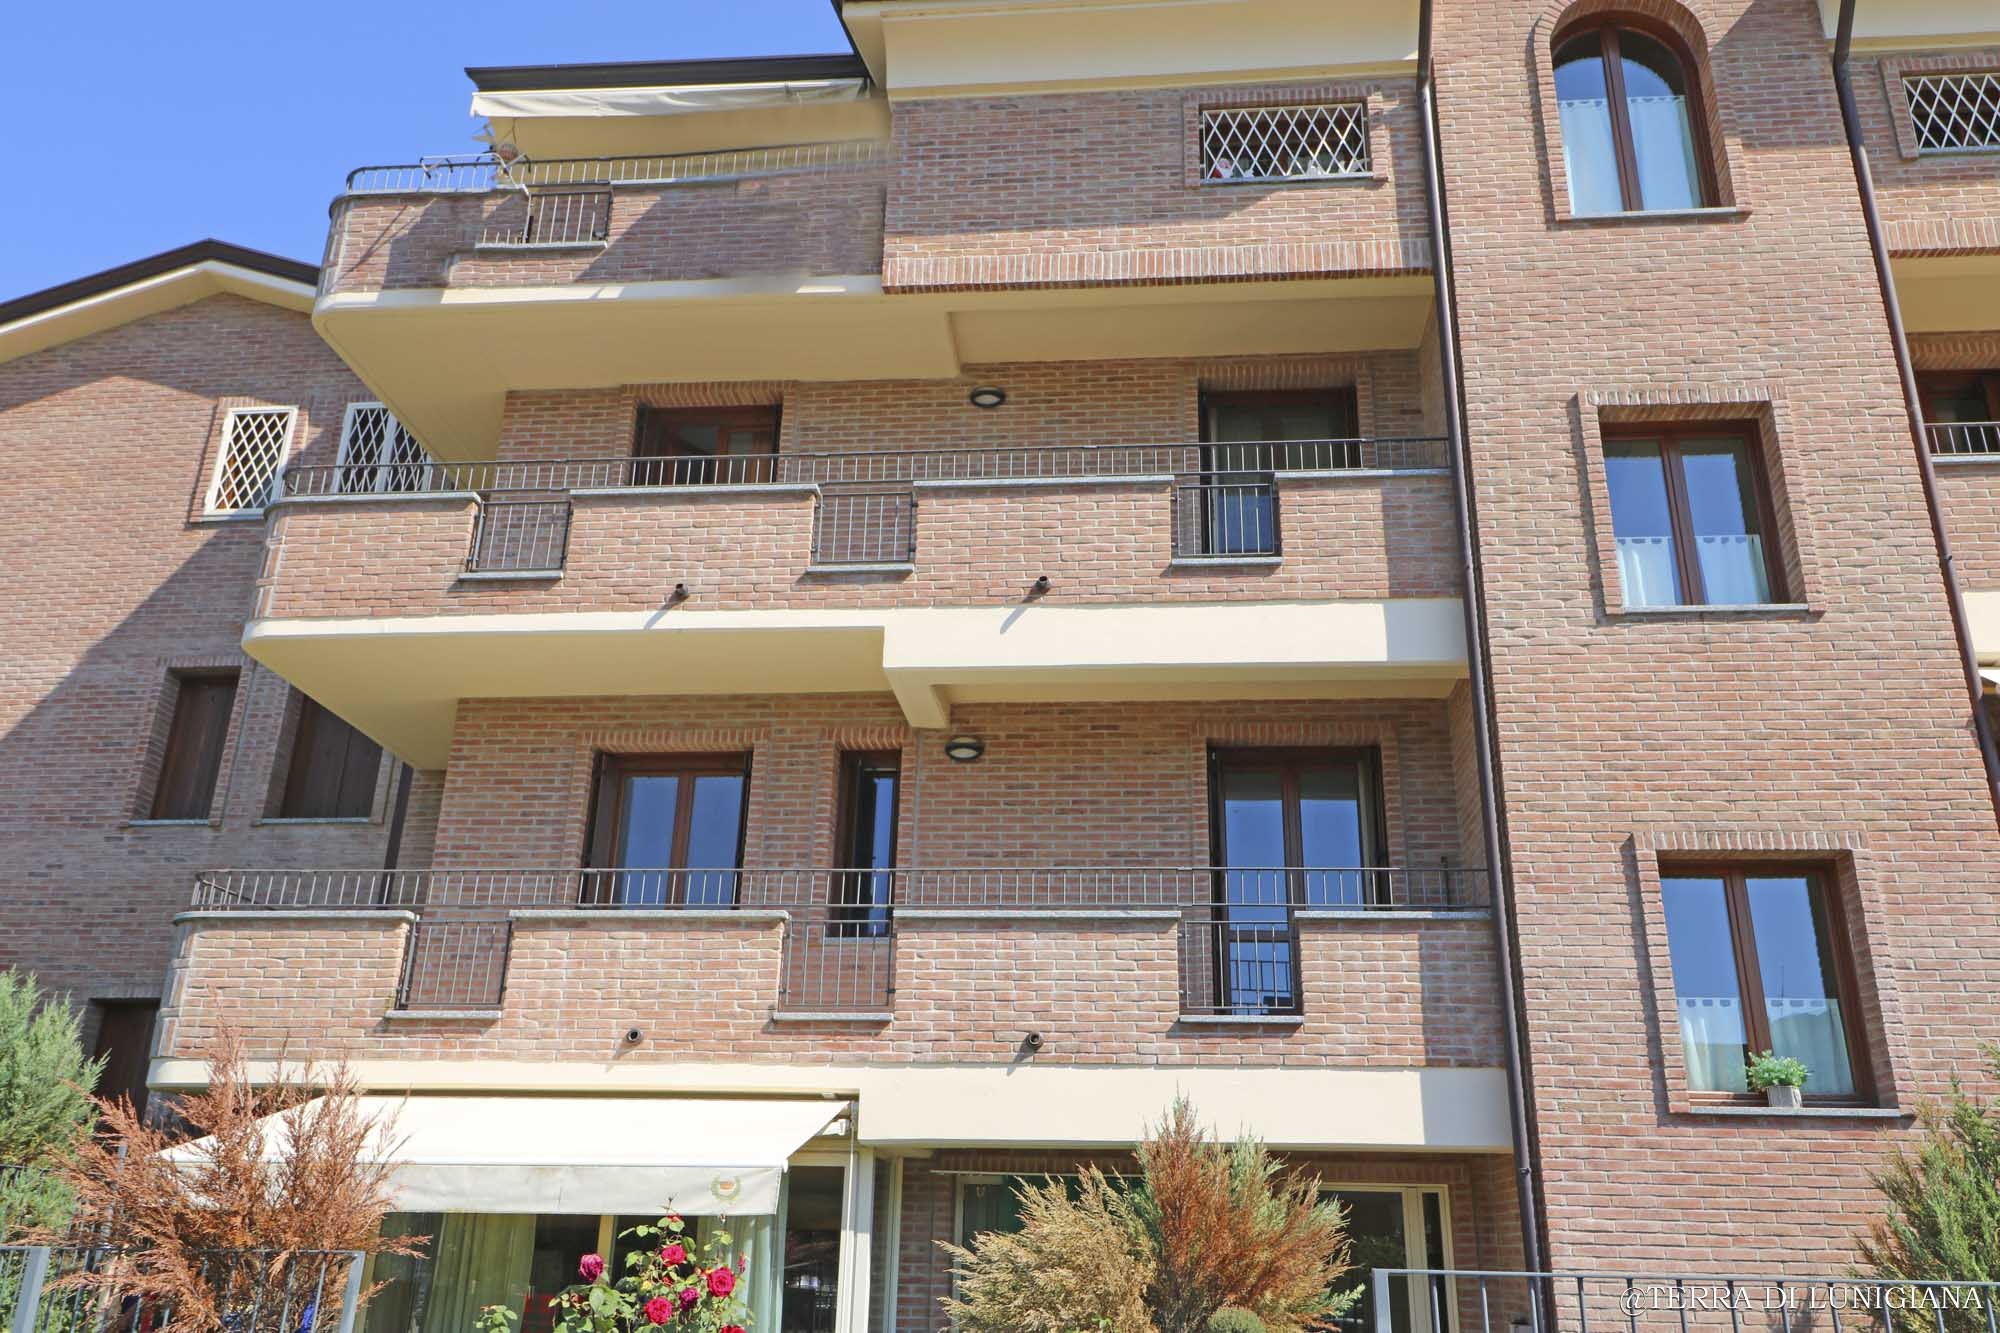 CORTE DEI CONTI – New Apartment